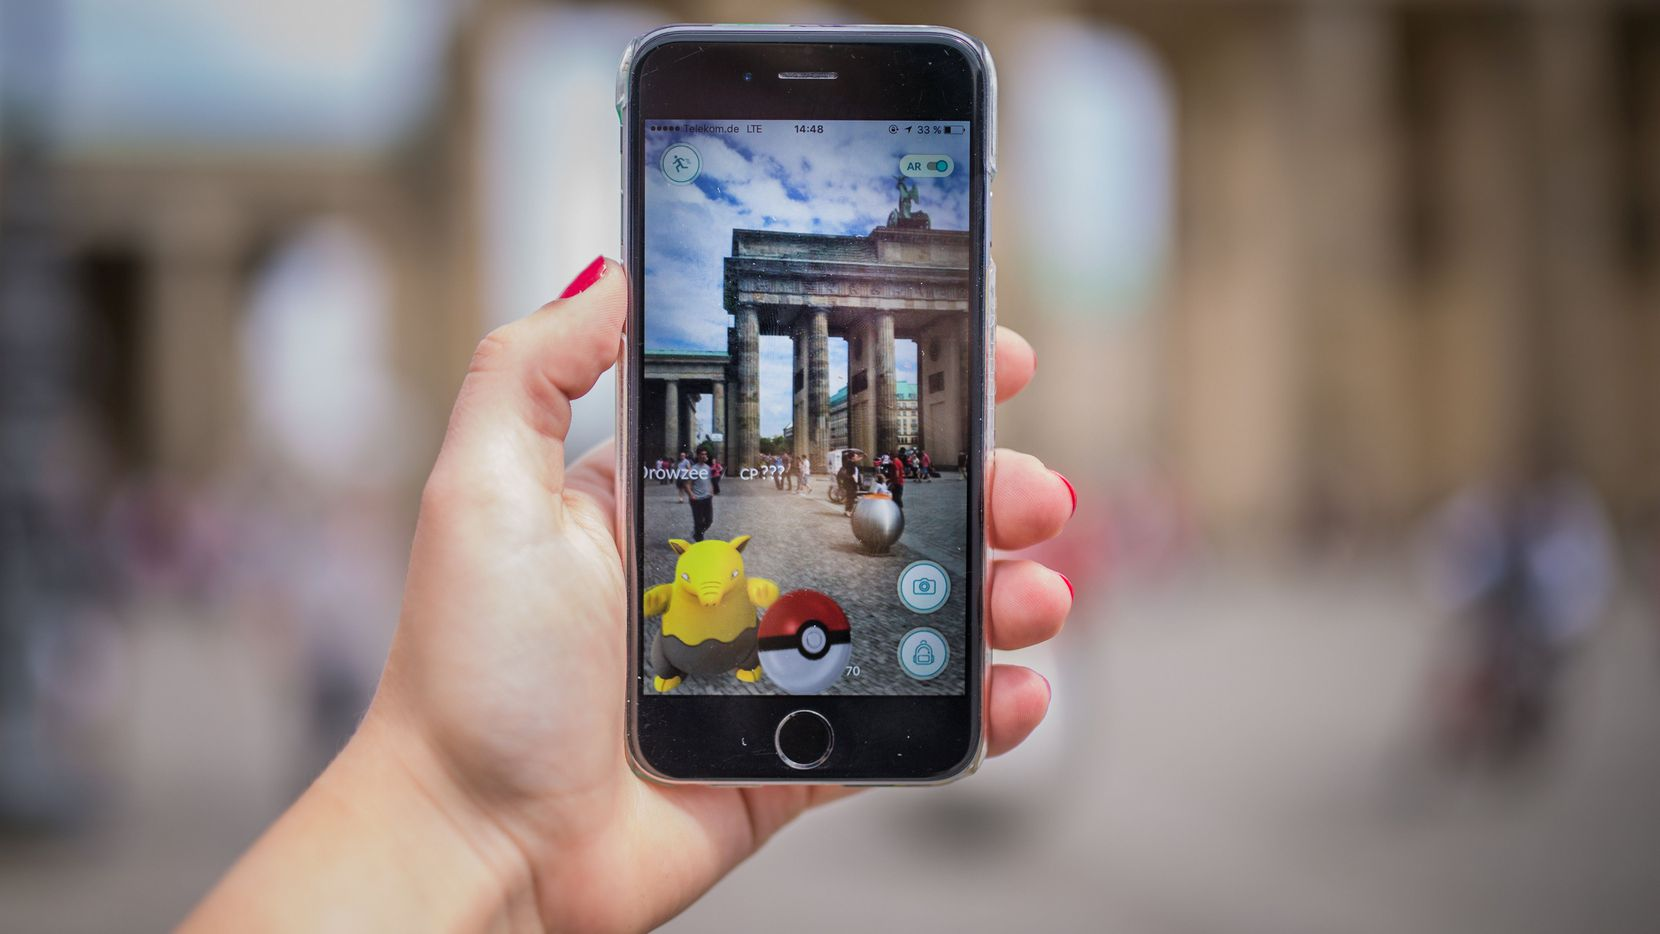 Pokemon Go has gotten Texans trying to catch 'em all into restaurants and stores across Dallas, and businesses and experts are trying to figure out how the popular mobile game could be a valuable marketing tool.